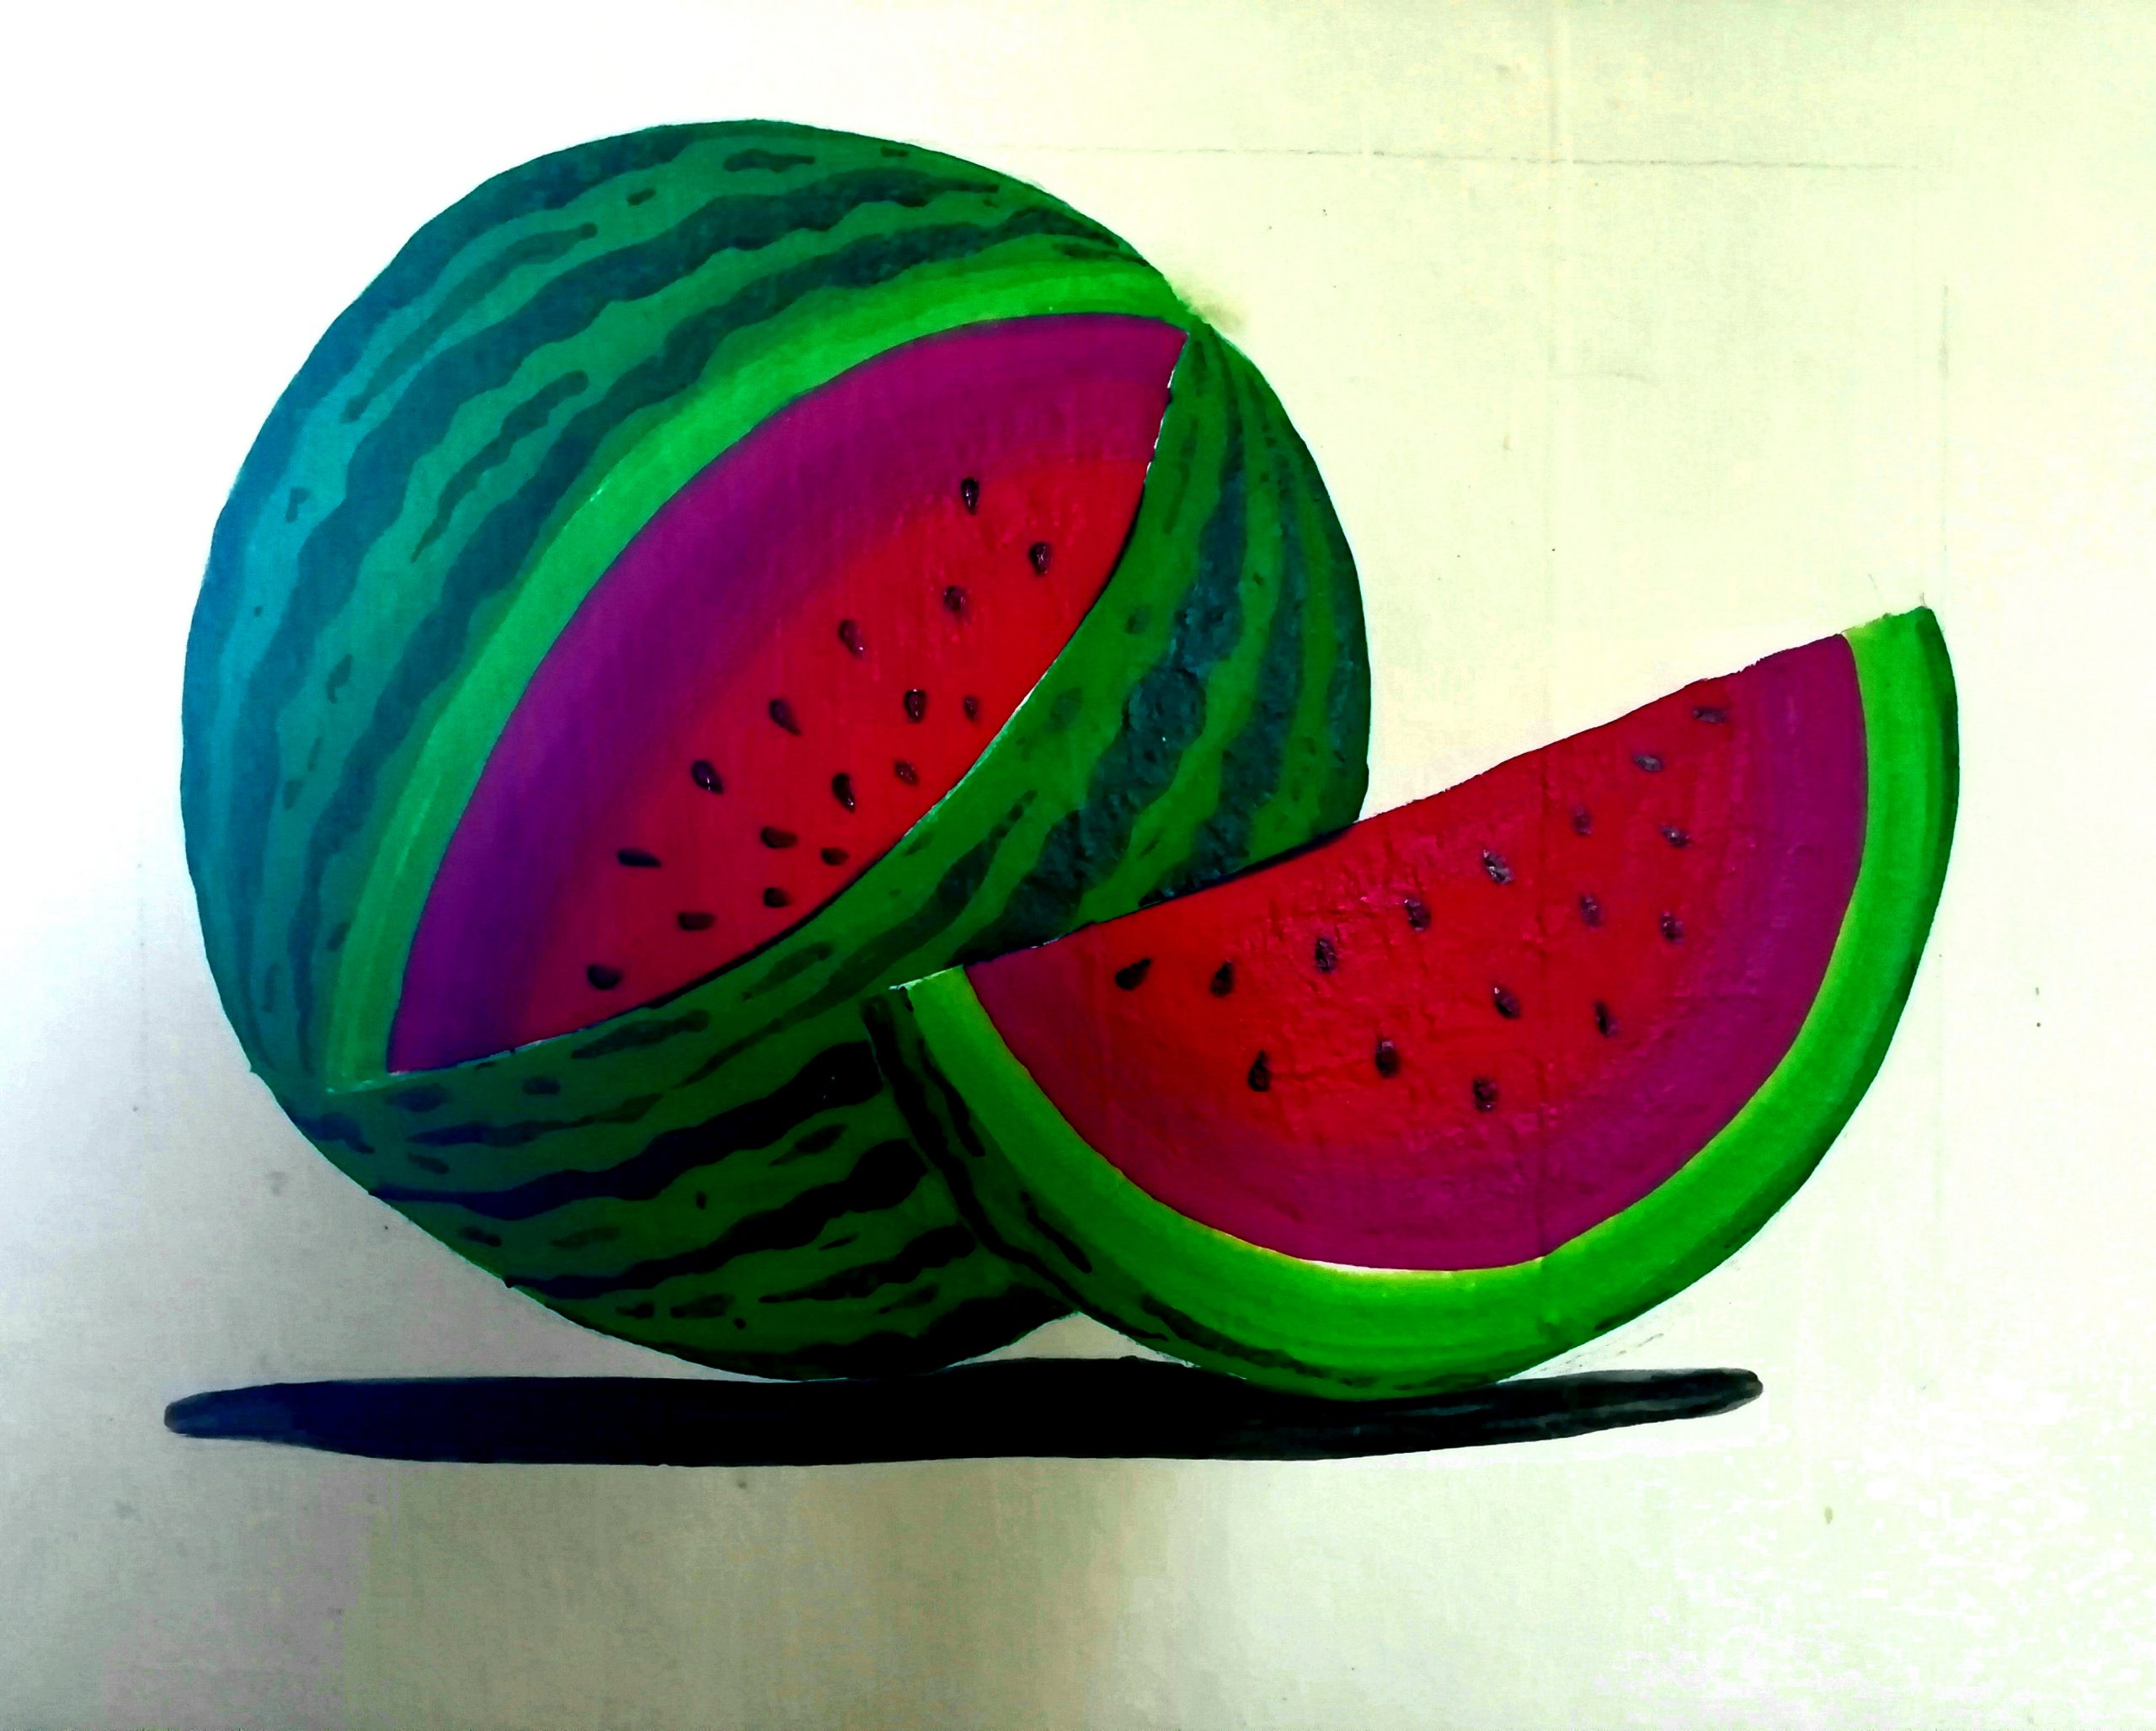 Watermelon painting on wall